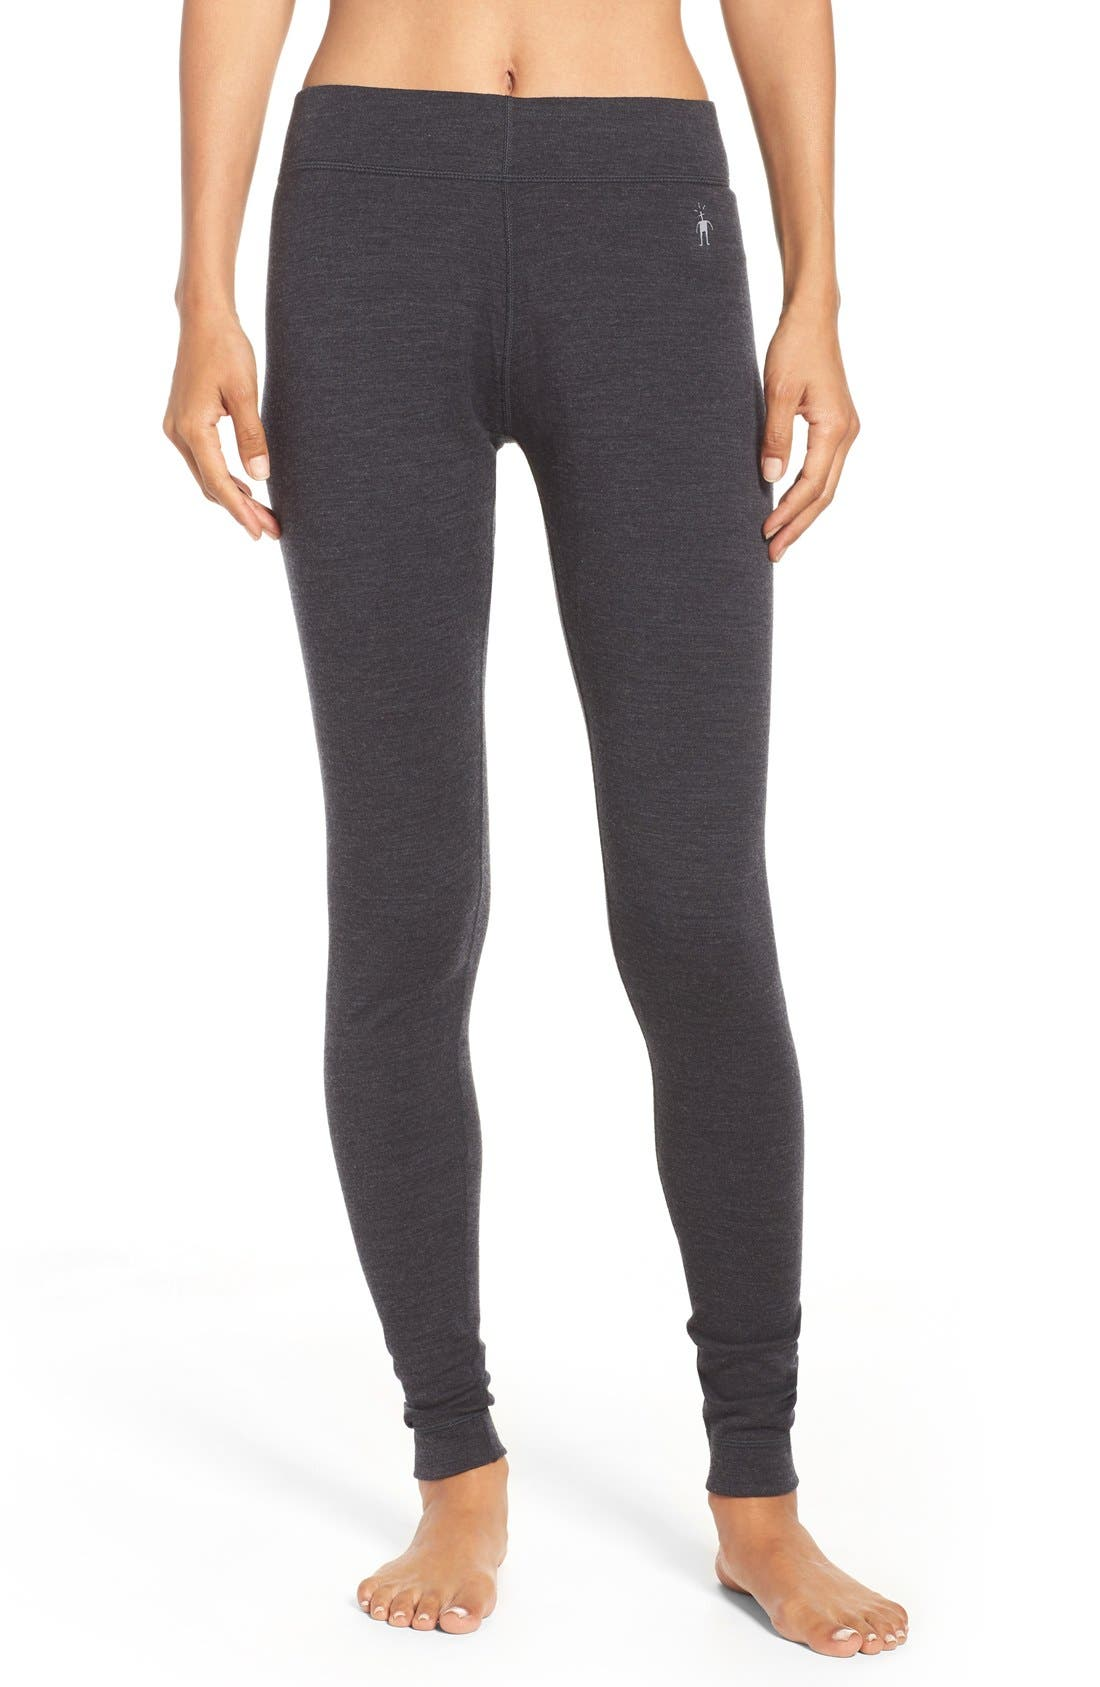 'NTS Mid 250' Bottoms,                         Main,                         color, Charcoal Heather